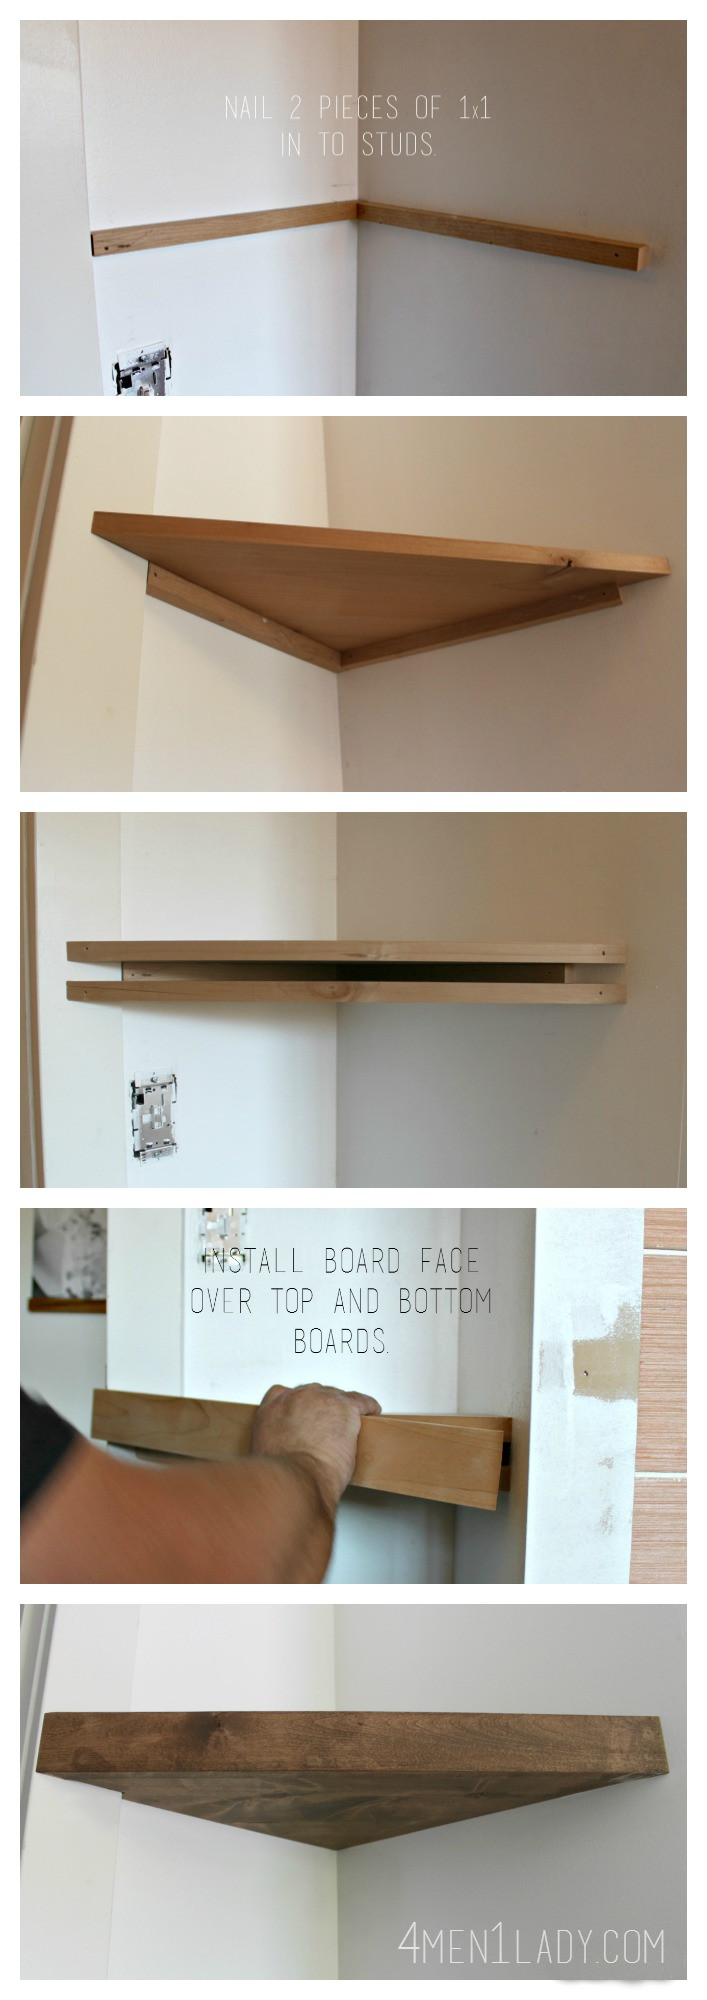 Best ideas about Floating Bookshelves DIY . Save or Pin When Life Gives You Lemons…Make Corner Floating Shelves Now.